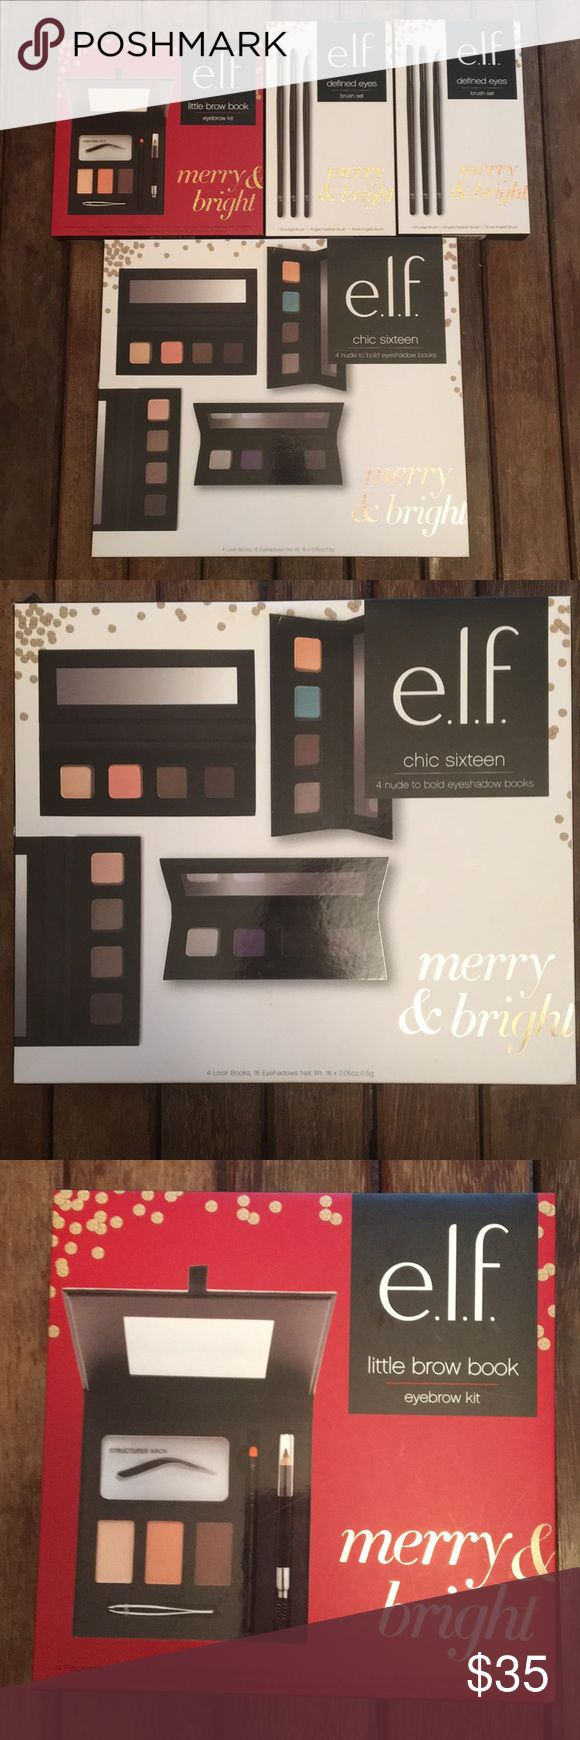 e.l.f. Makeup & Accessory Bundle 💋 NWT Large beauty bundle! e.l.f. Makeup and accessories. 4 look books (16 eyeshadow shades), little brow book (4 reusable stencils, 2 eyebrow powders, 1 eyebrow defining wax, 1 eyebrow brush, 1 dual ended brow pencil & brush & 1 tweezer), 2 defines eyes brush sets (2 smudge brushes, 2 angled eyeliner brushes & 2 small angled brushes). Don't miss your chance to get this awesome deal. All brand new! e.l.f. Makeup